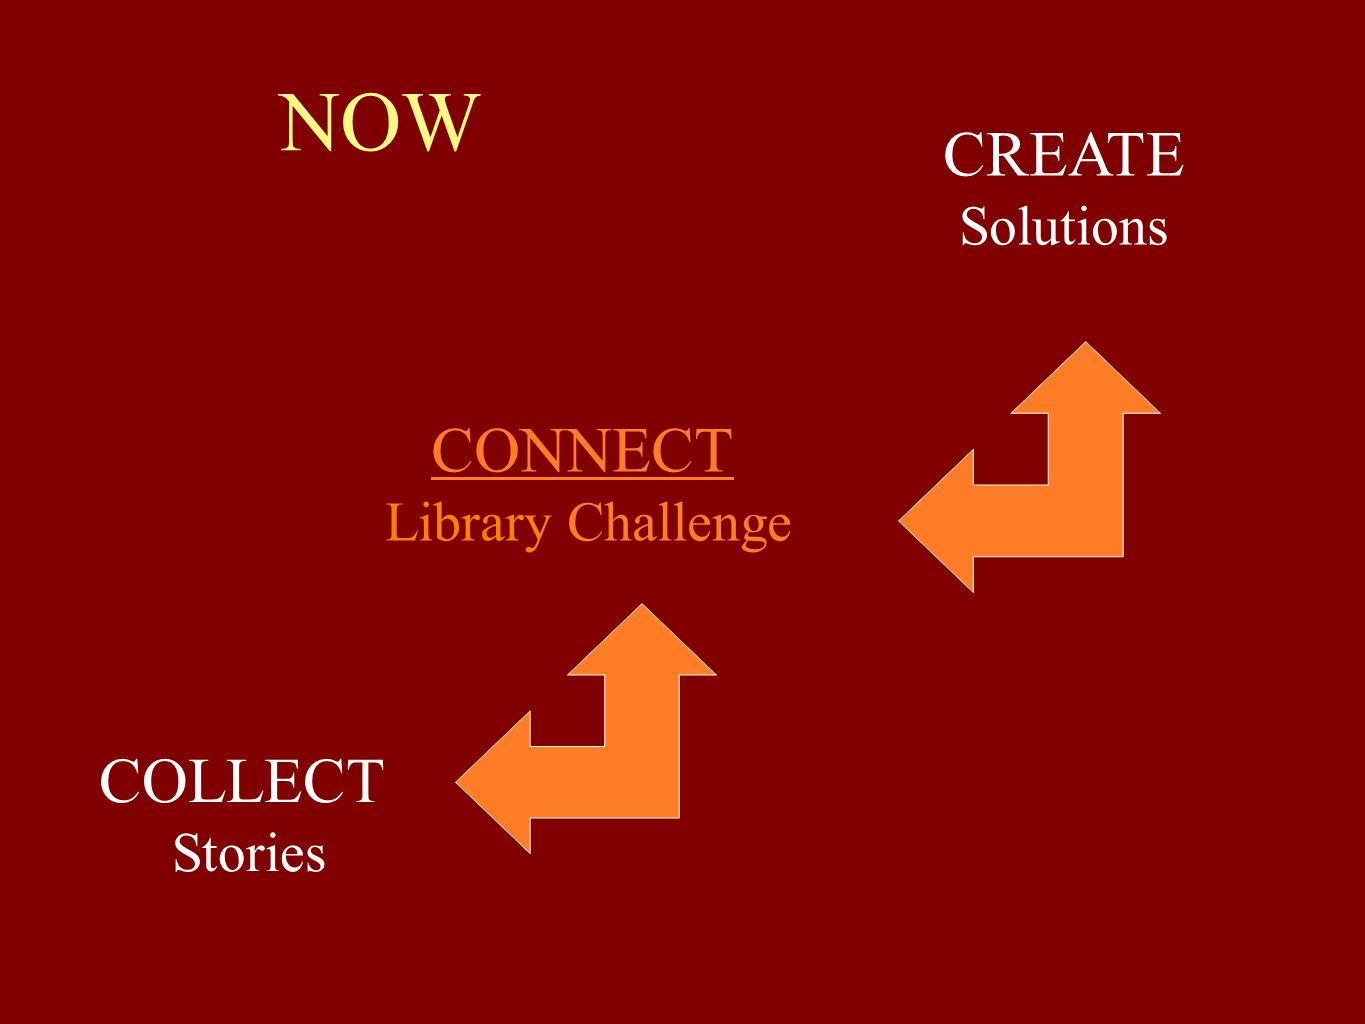 NOW CREATE Solutions CONNECT COLLECT Library Challenge Stories